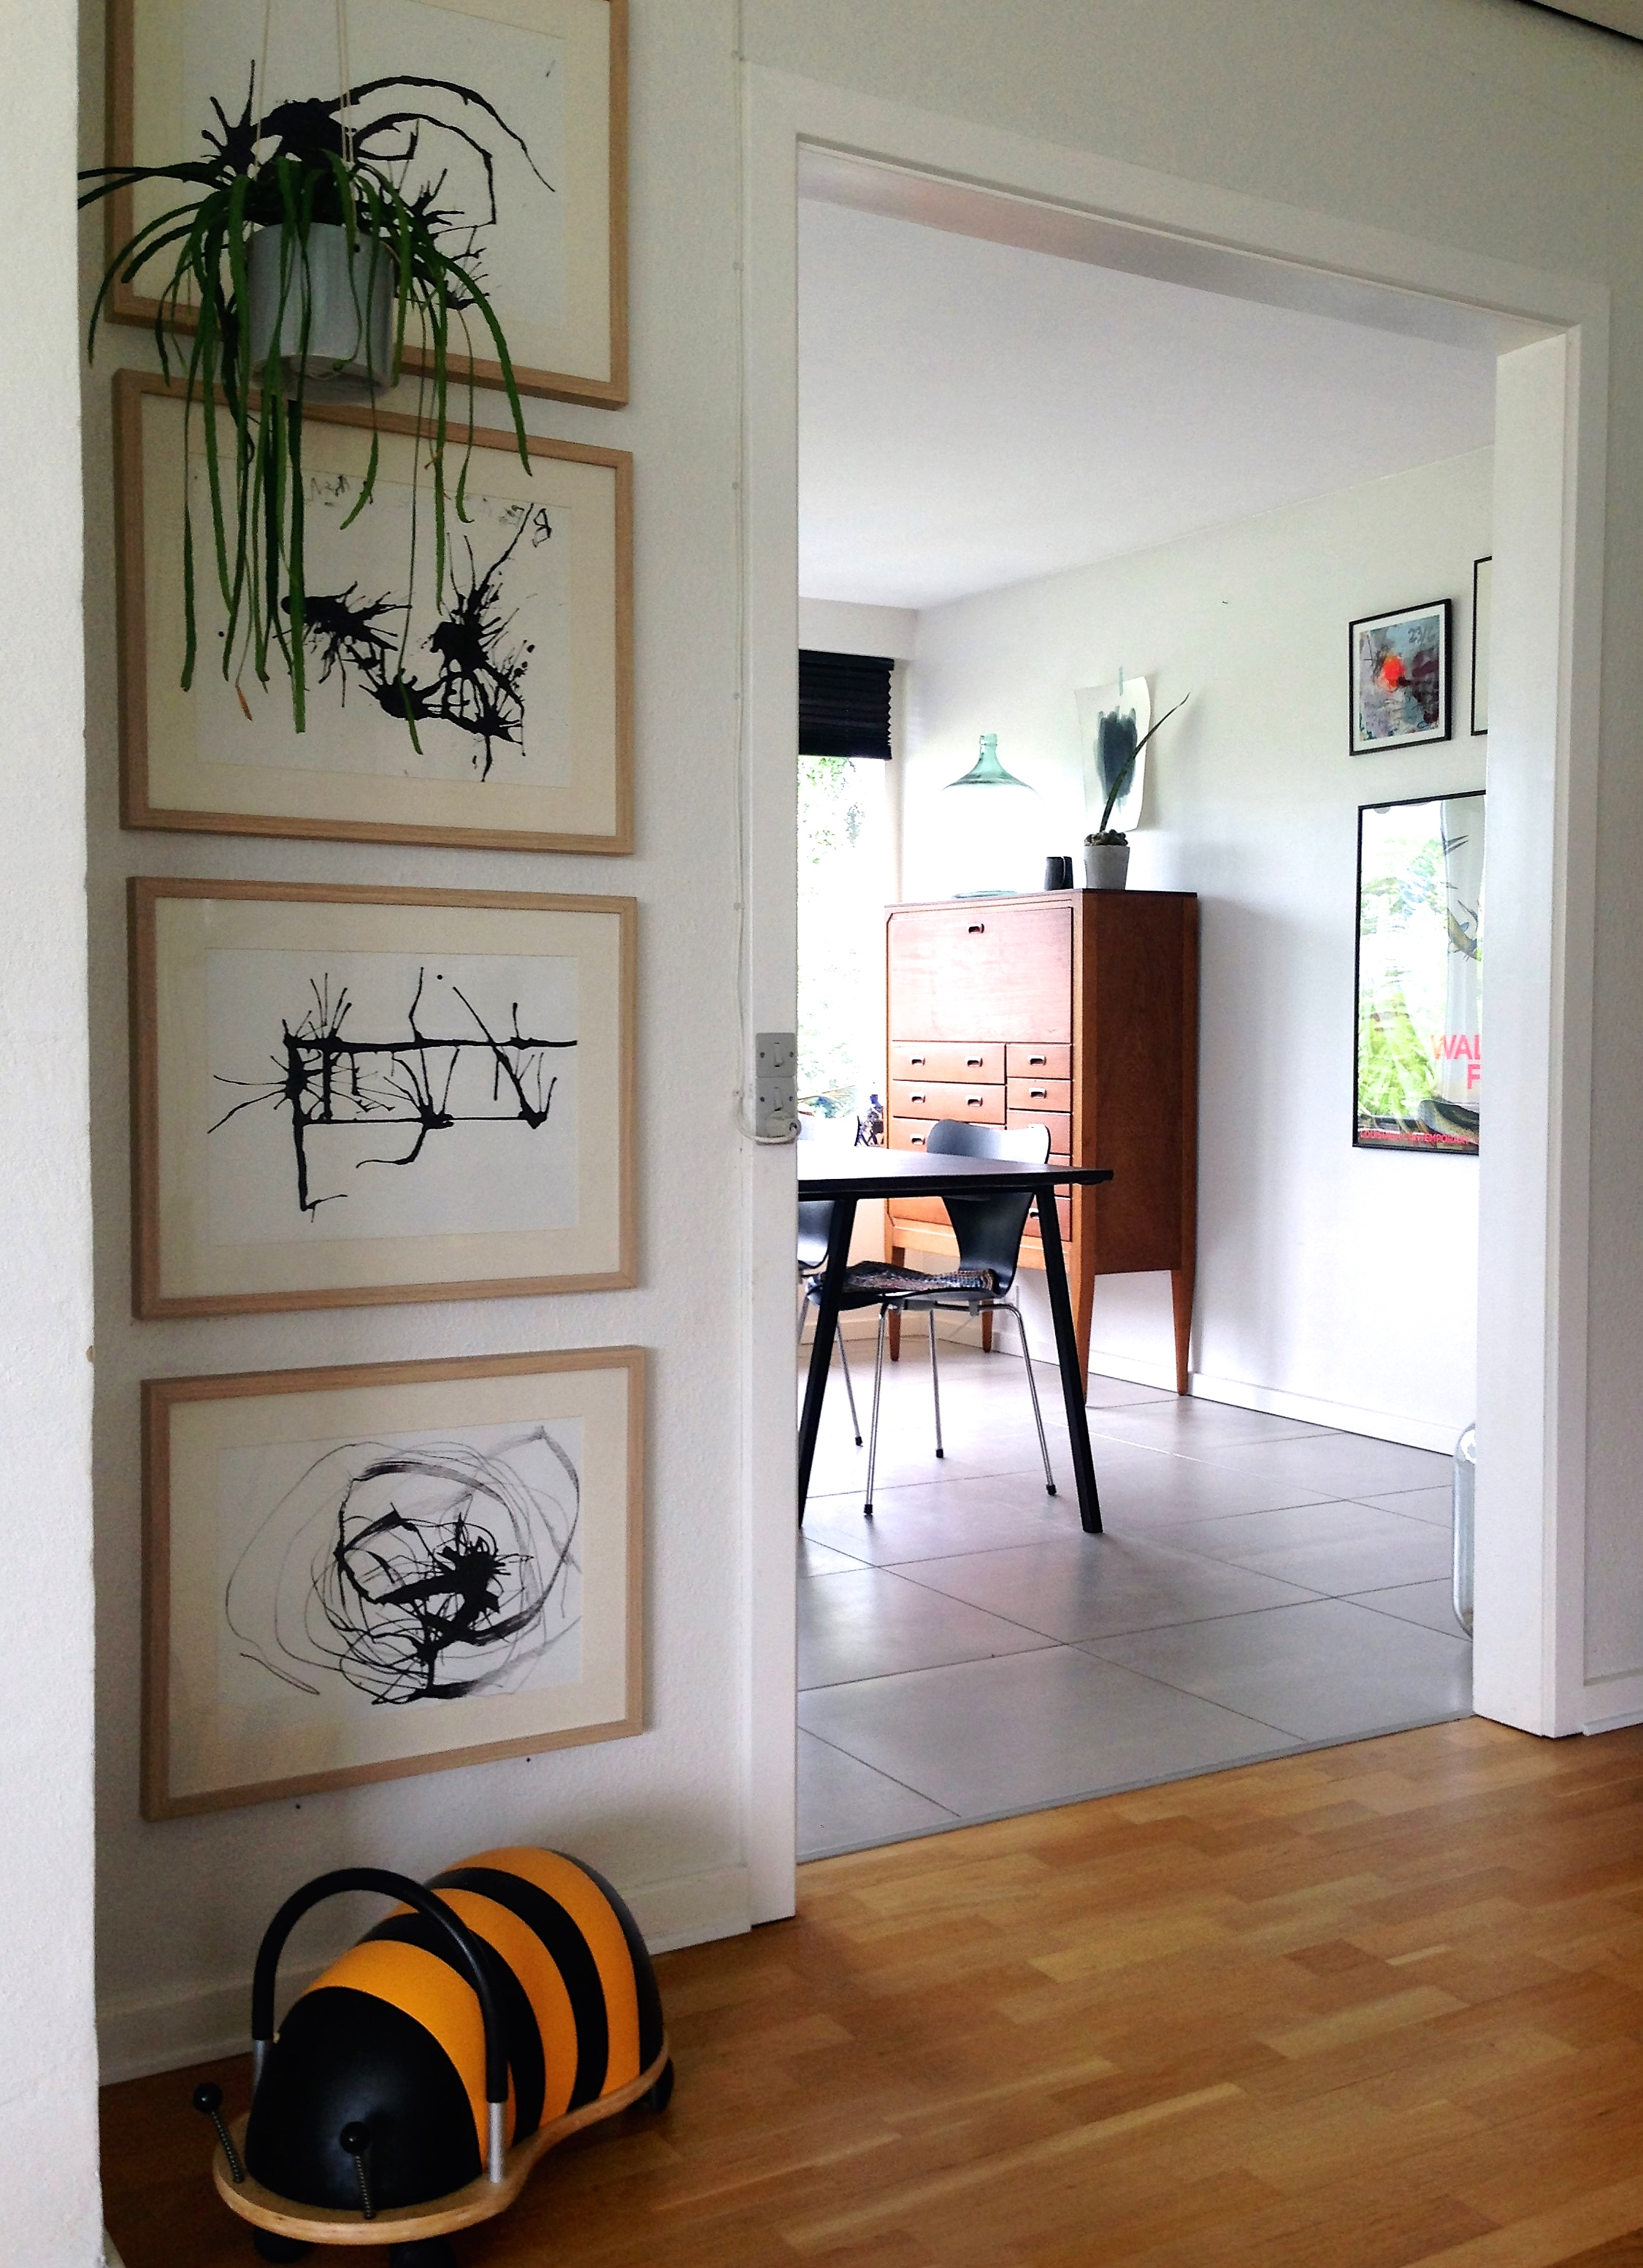 A view of the dining area from the family room. The boys Wheely Bug is ready for a ride! How great are the 4 pieces of original art? Each member of the family created their own masterpiece with paint and a straw. Simple modern frames create a unique collection.